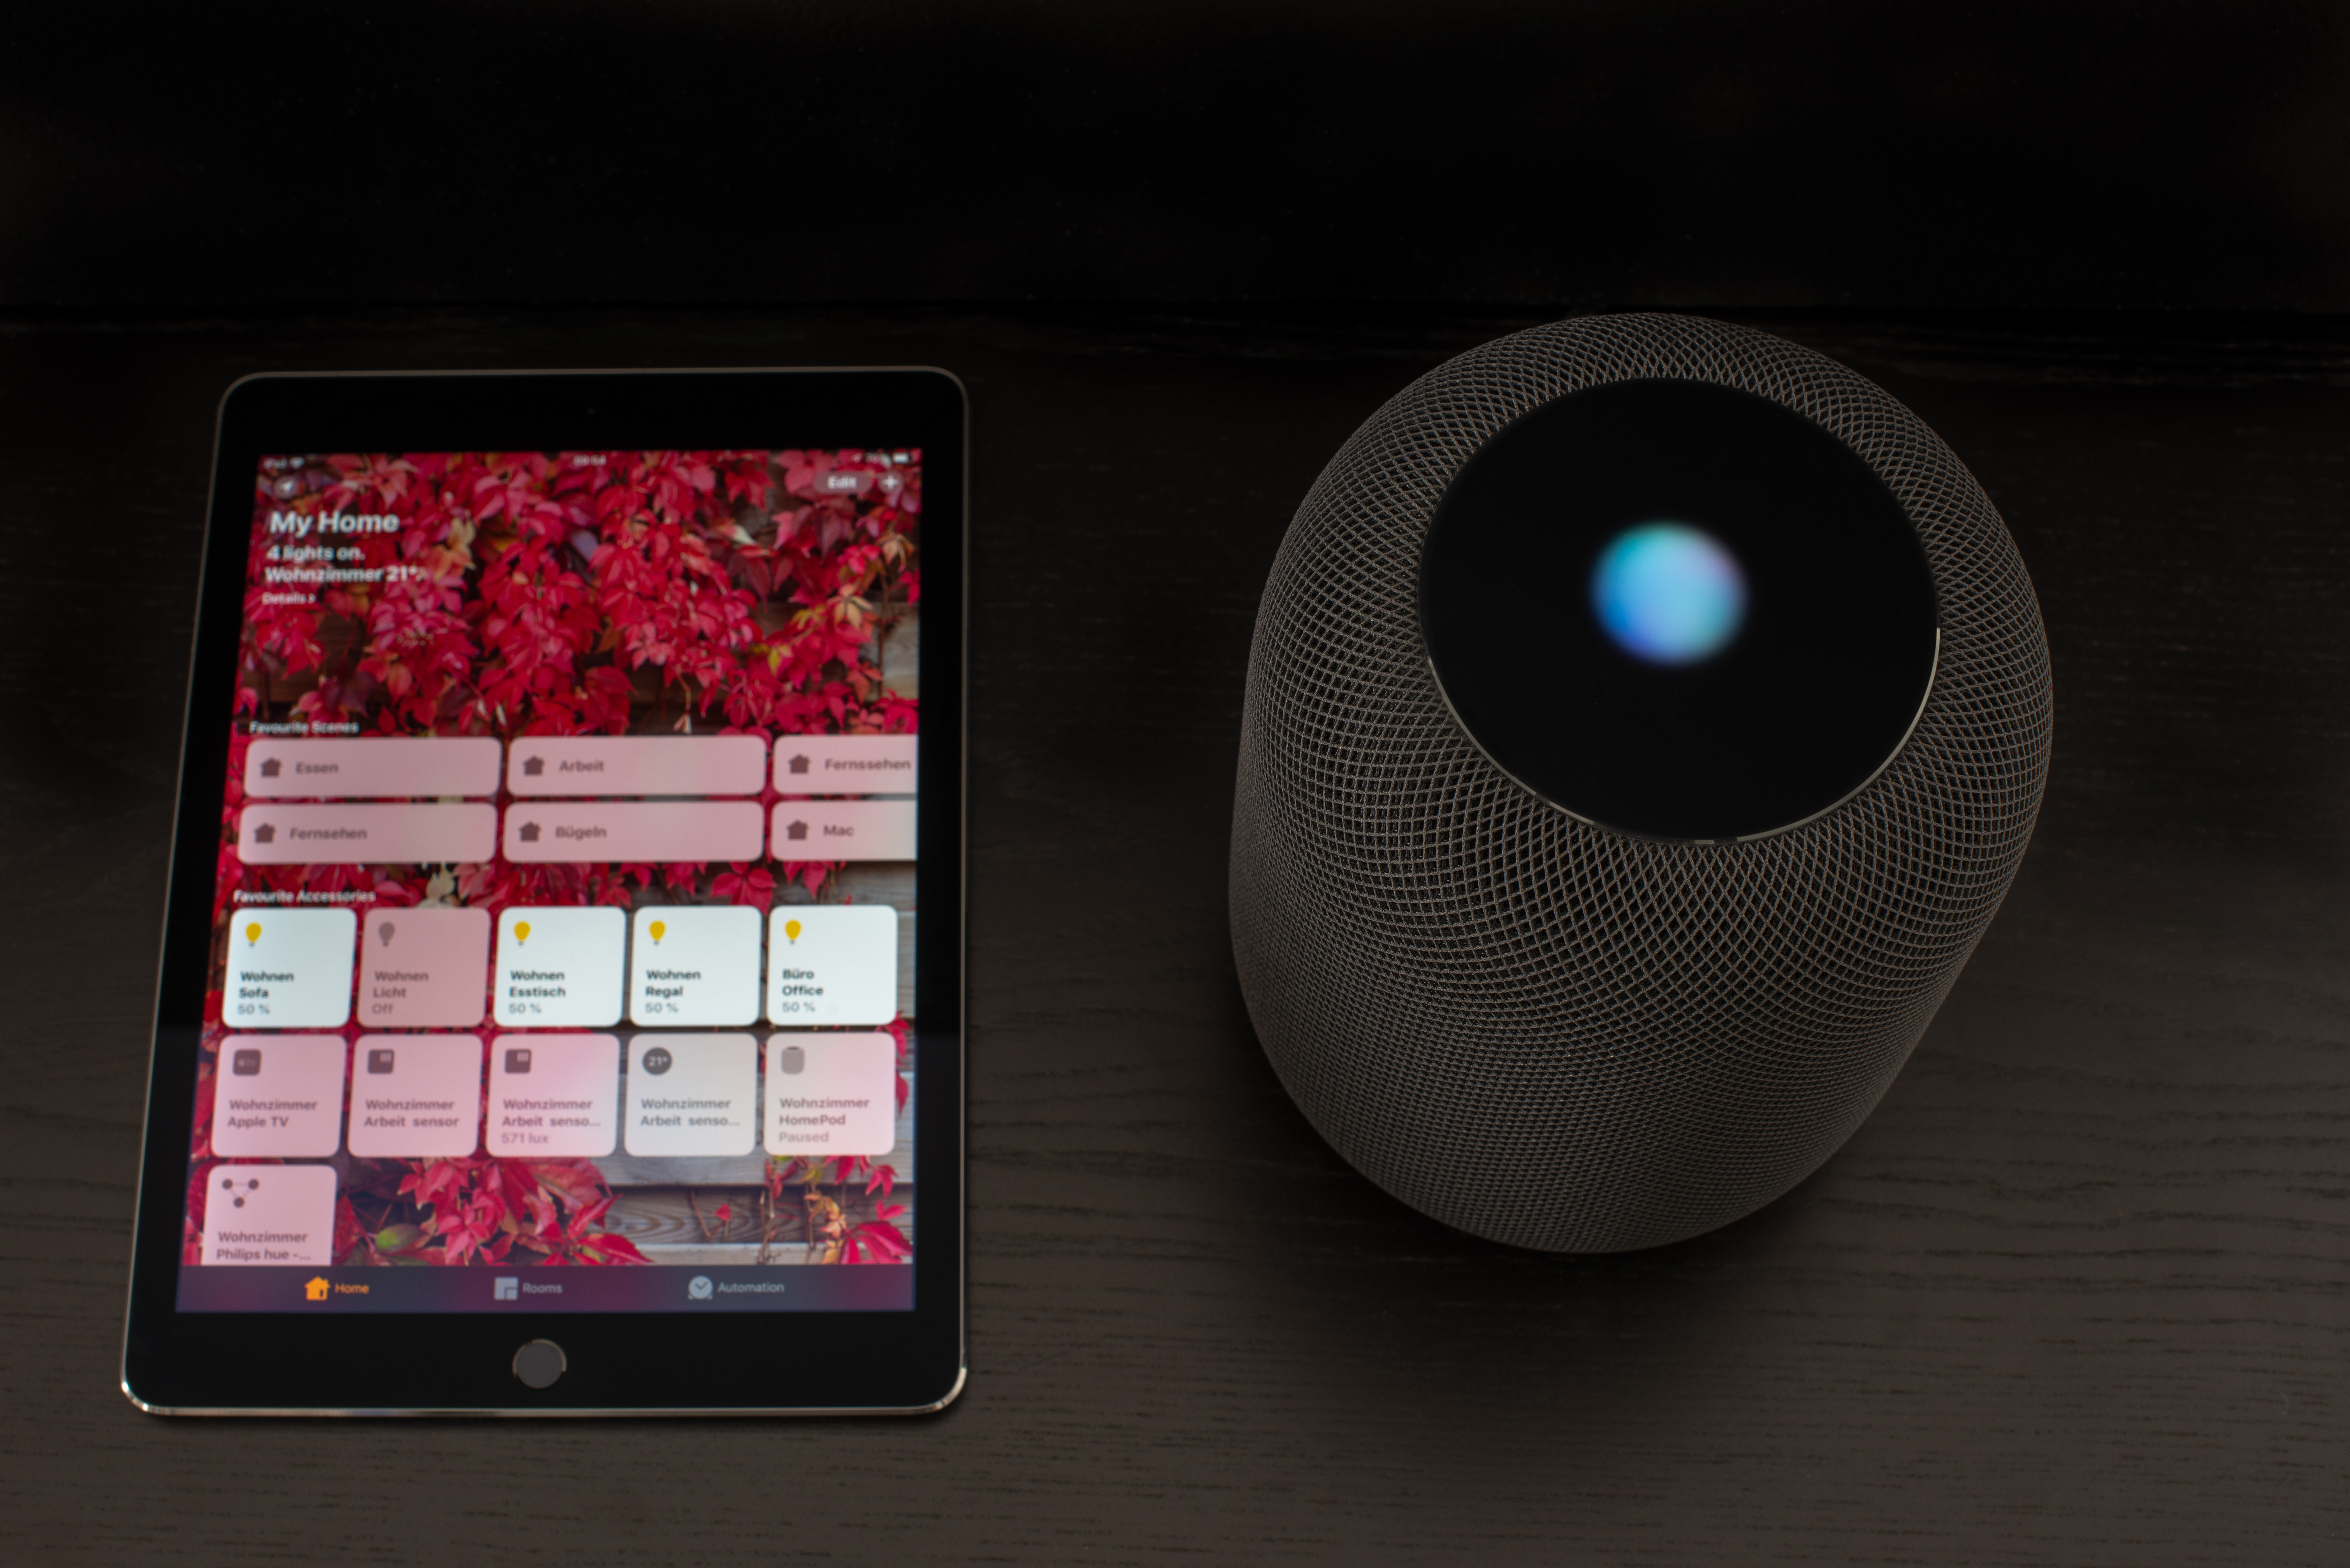 smart home market research homepod